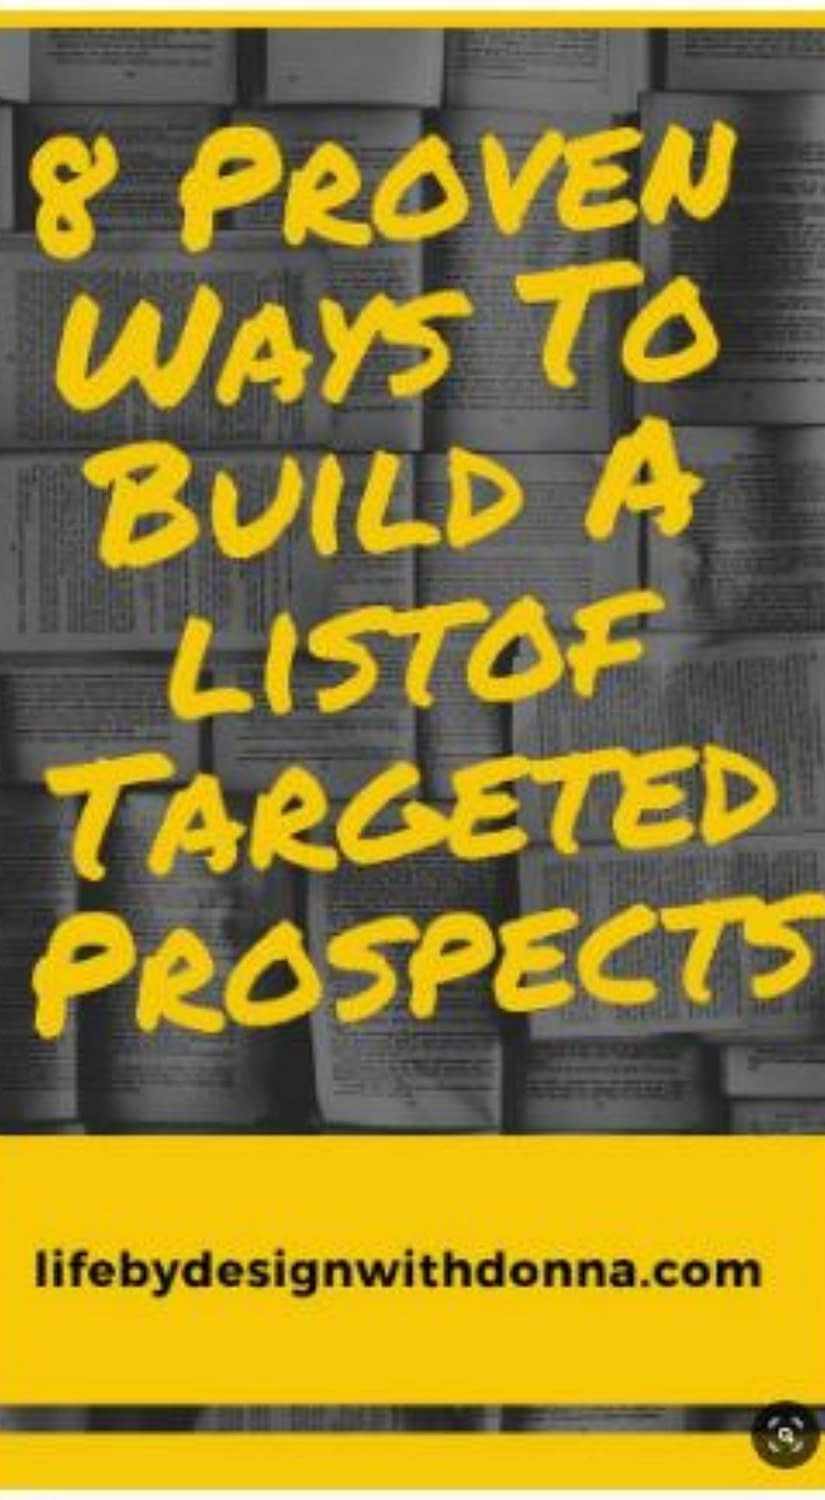 8 proven ways to build a list of targeted prospects